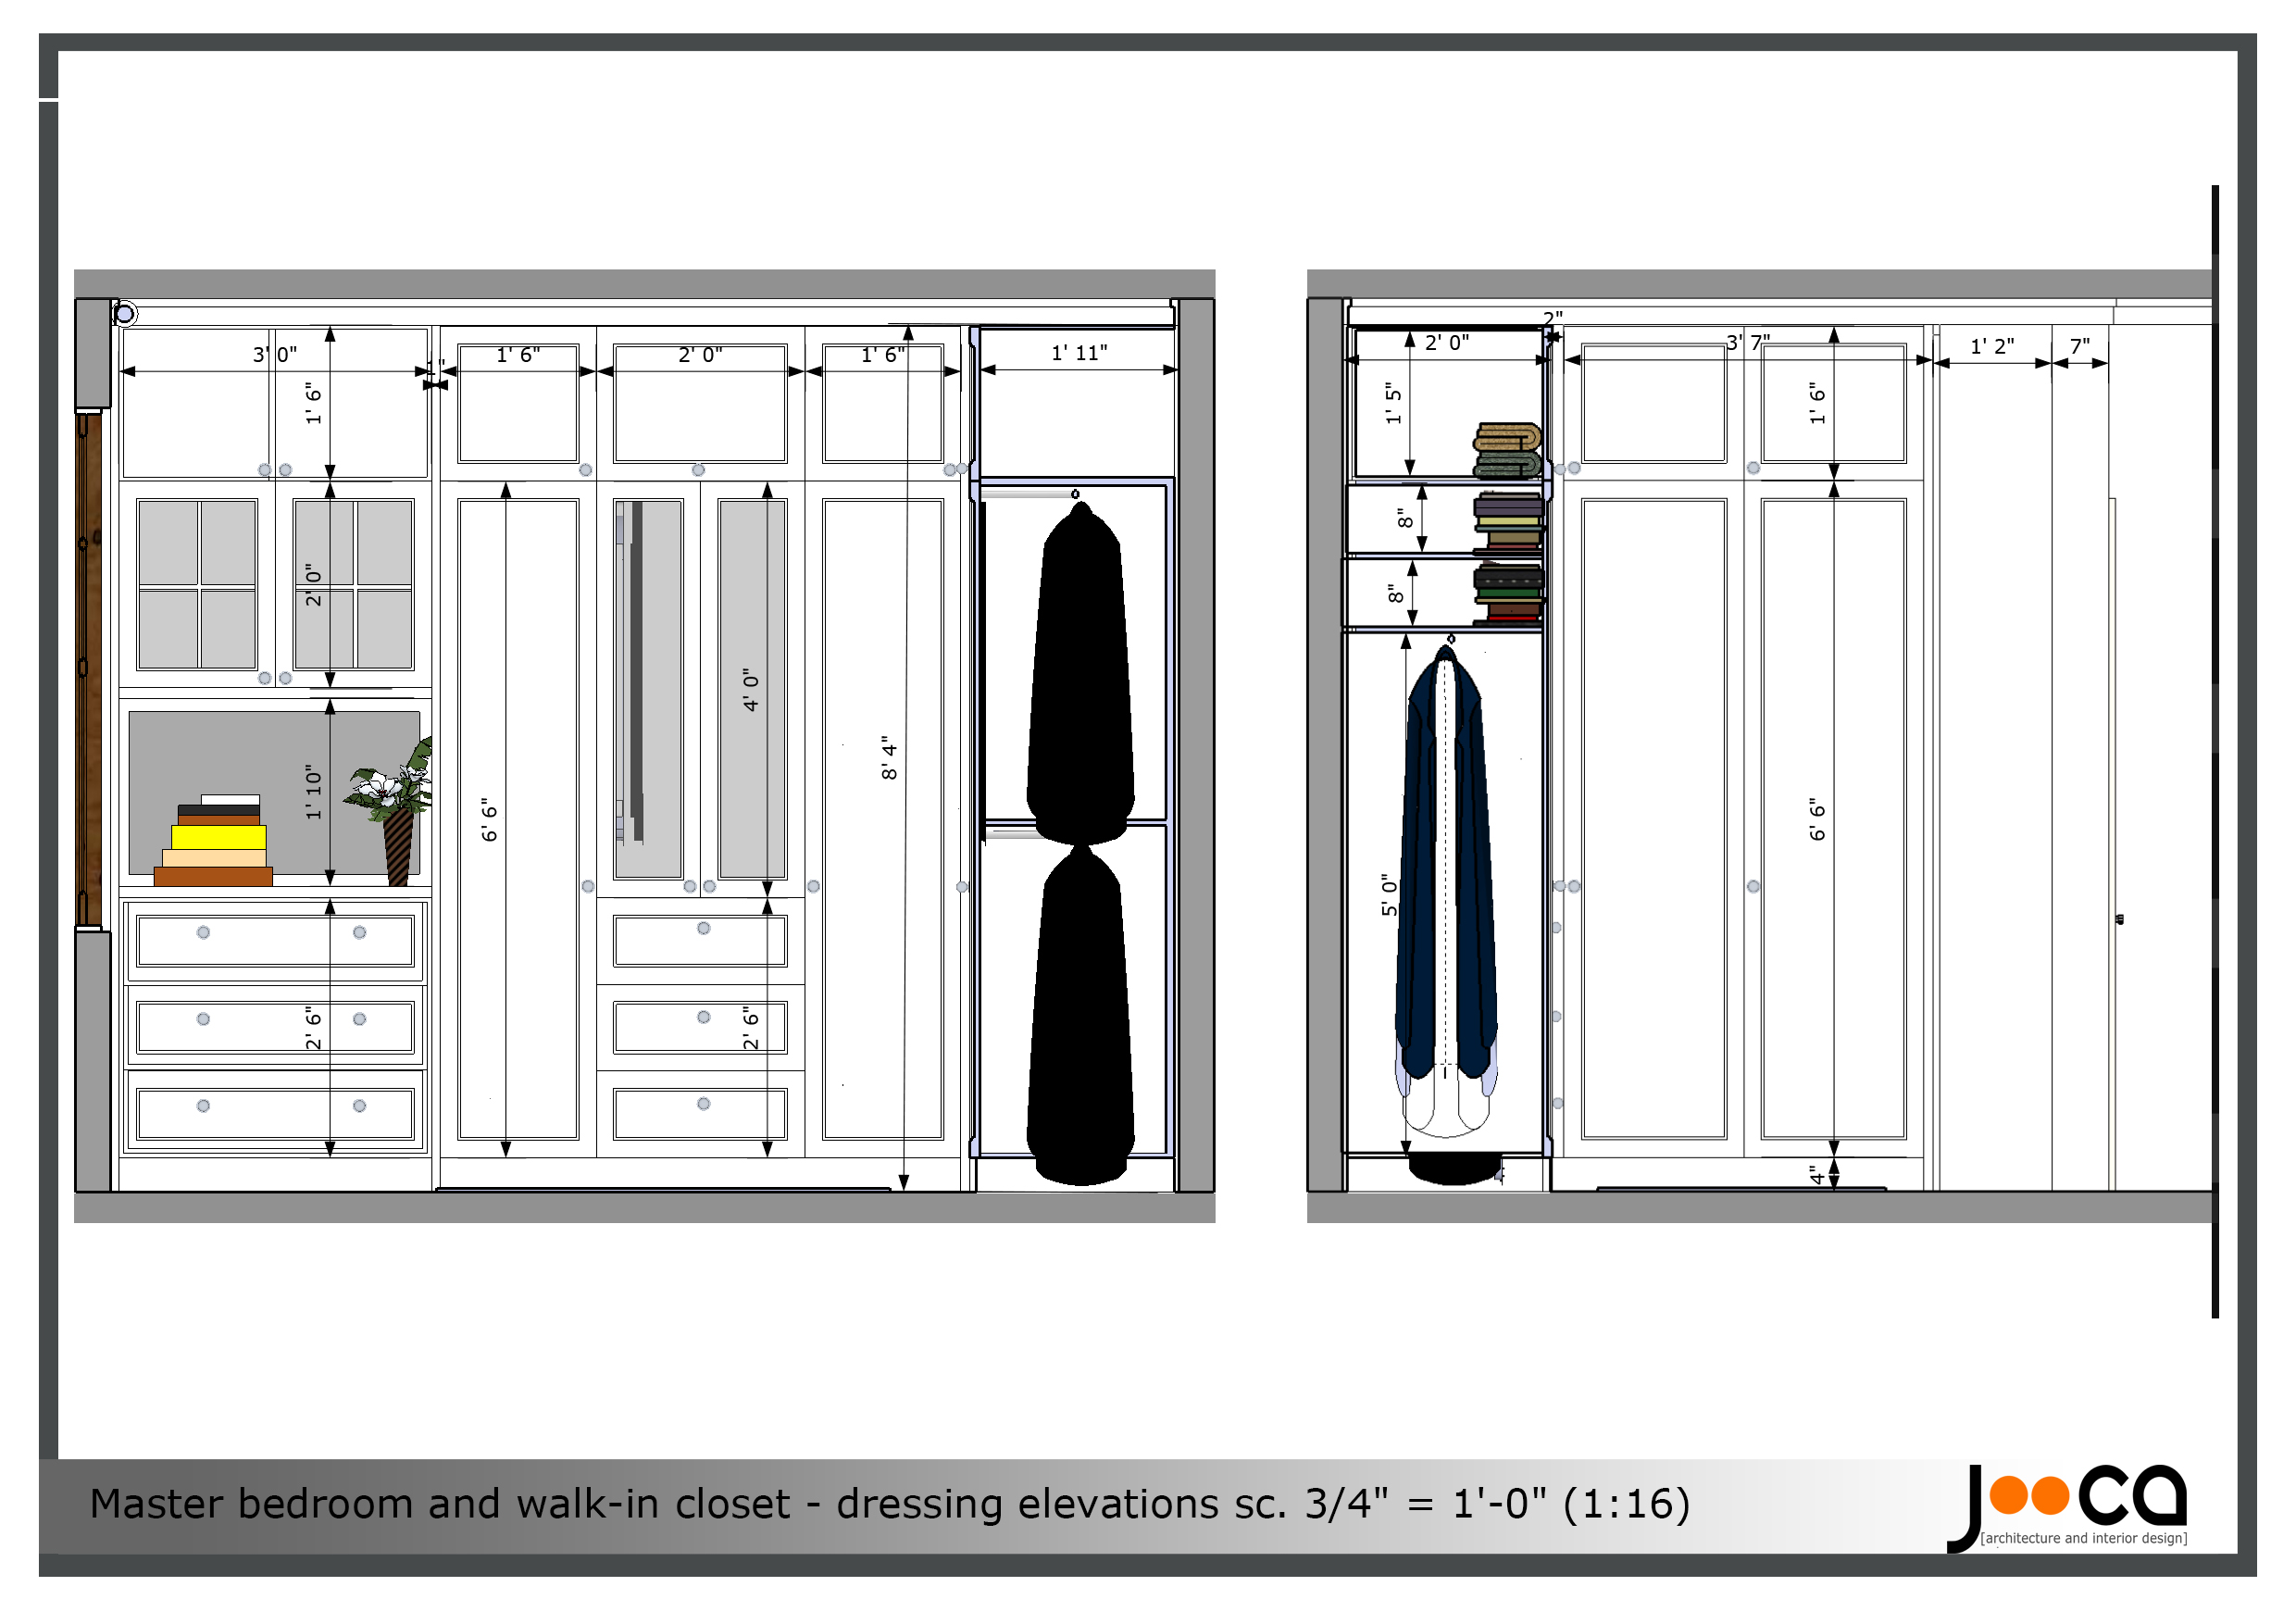 Viewdesignerproject projectbedroom design Walk in closet measurements